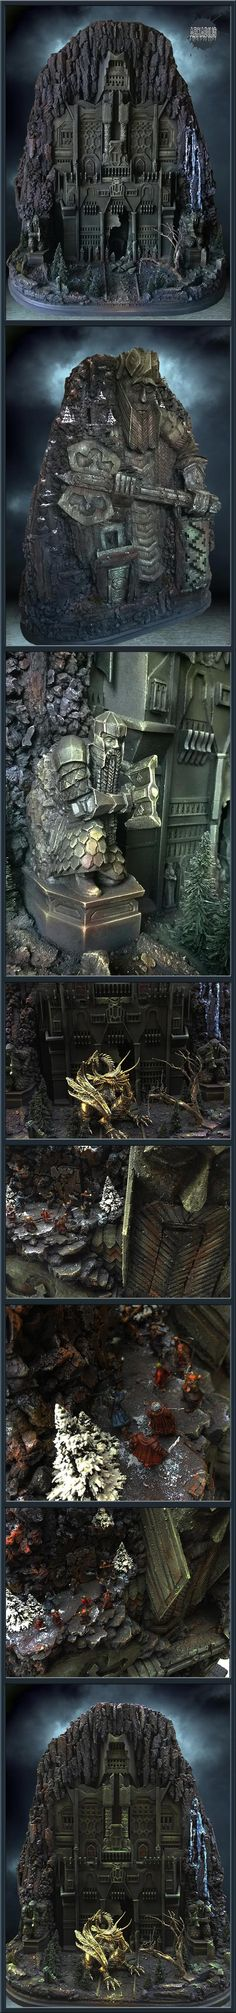 The gate of Erebor - The Lonely Mountain - The Hobbit - Diorama by Arkadius